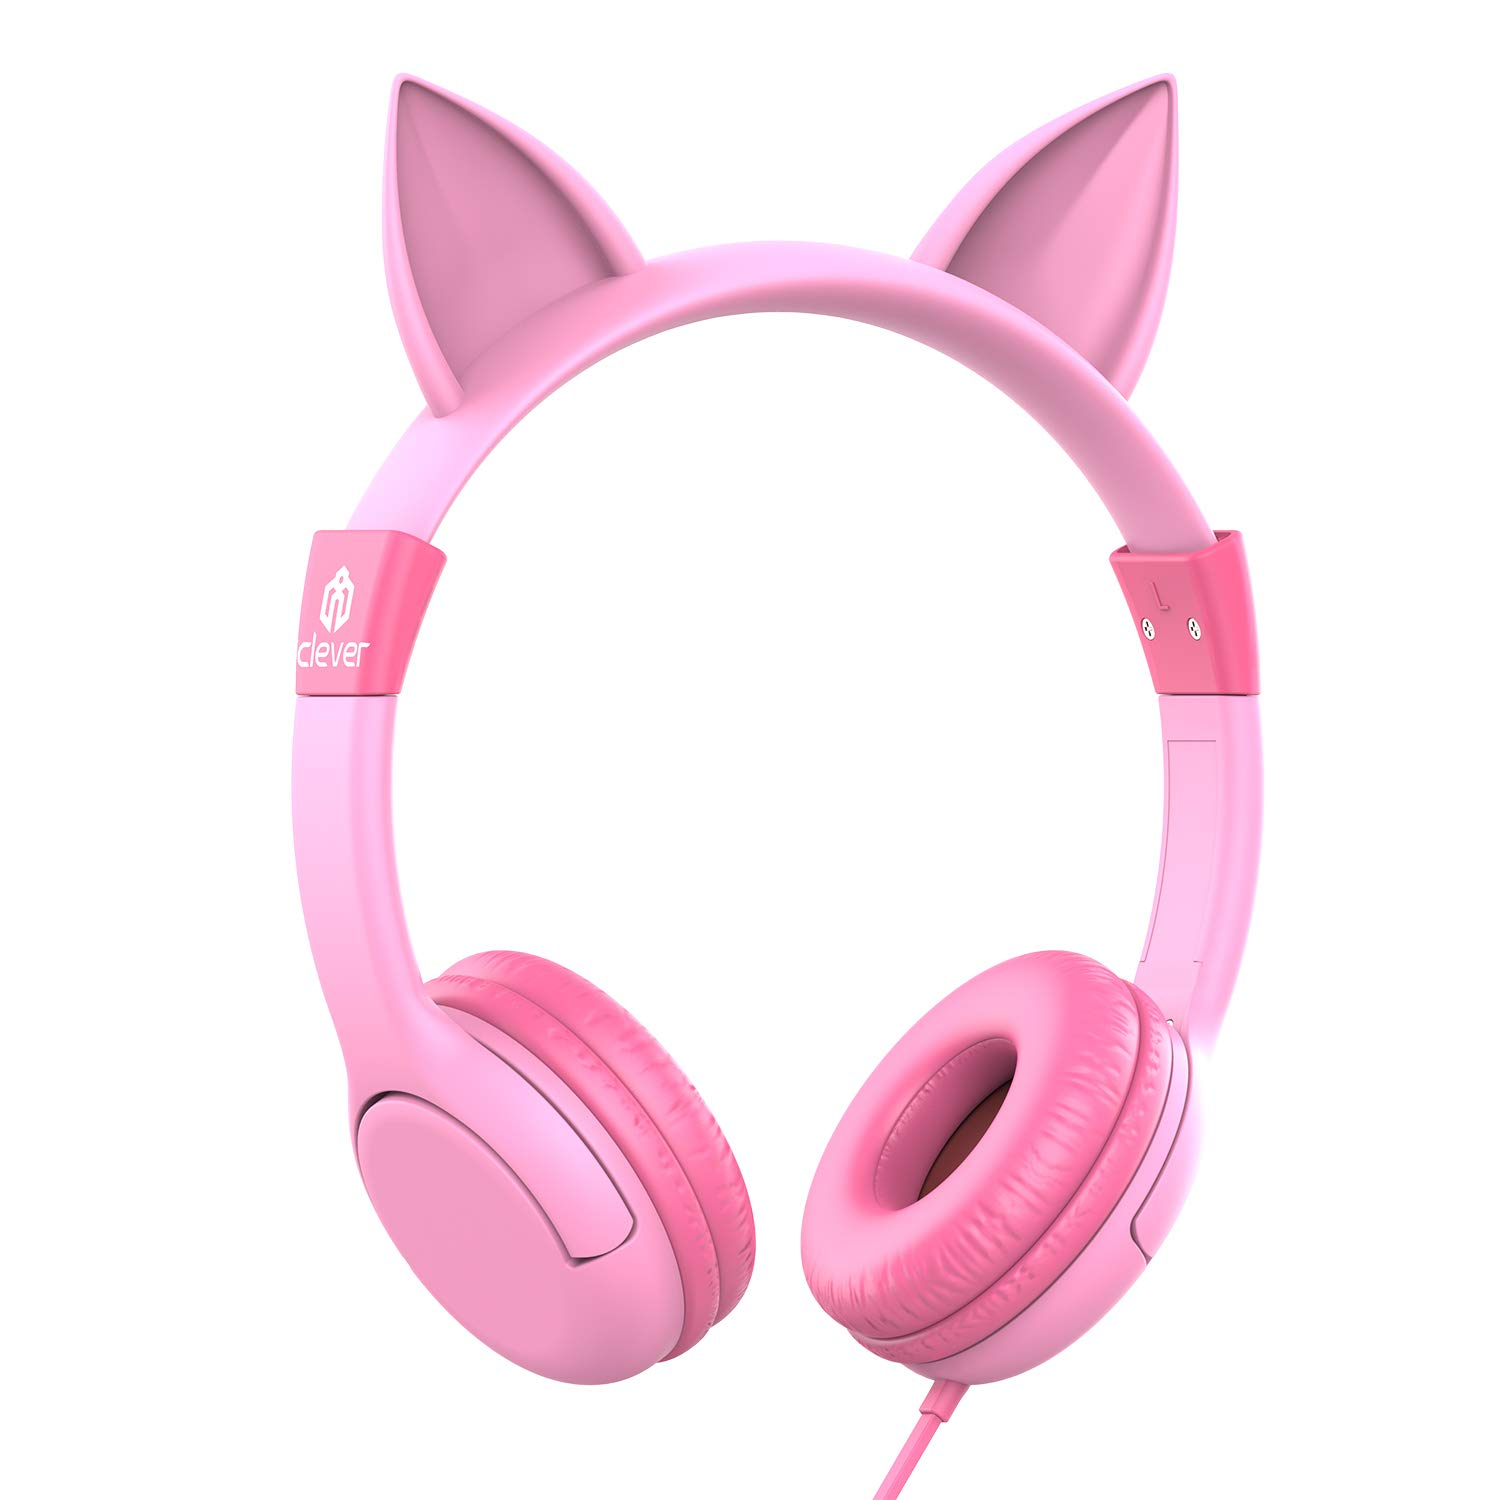 a7f7a0eaabd iClever Kids Headphones Girls - Cat-Inspired Wired On-Ear Headphones for  Kids, 85dB Volume Limiting, Food Grade Silicone, Lightweight, ...